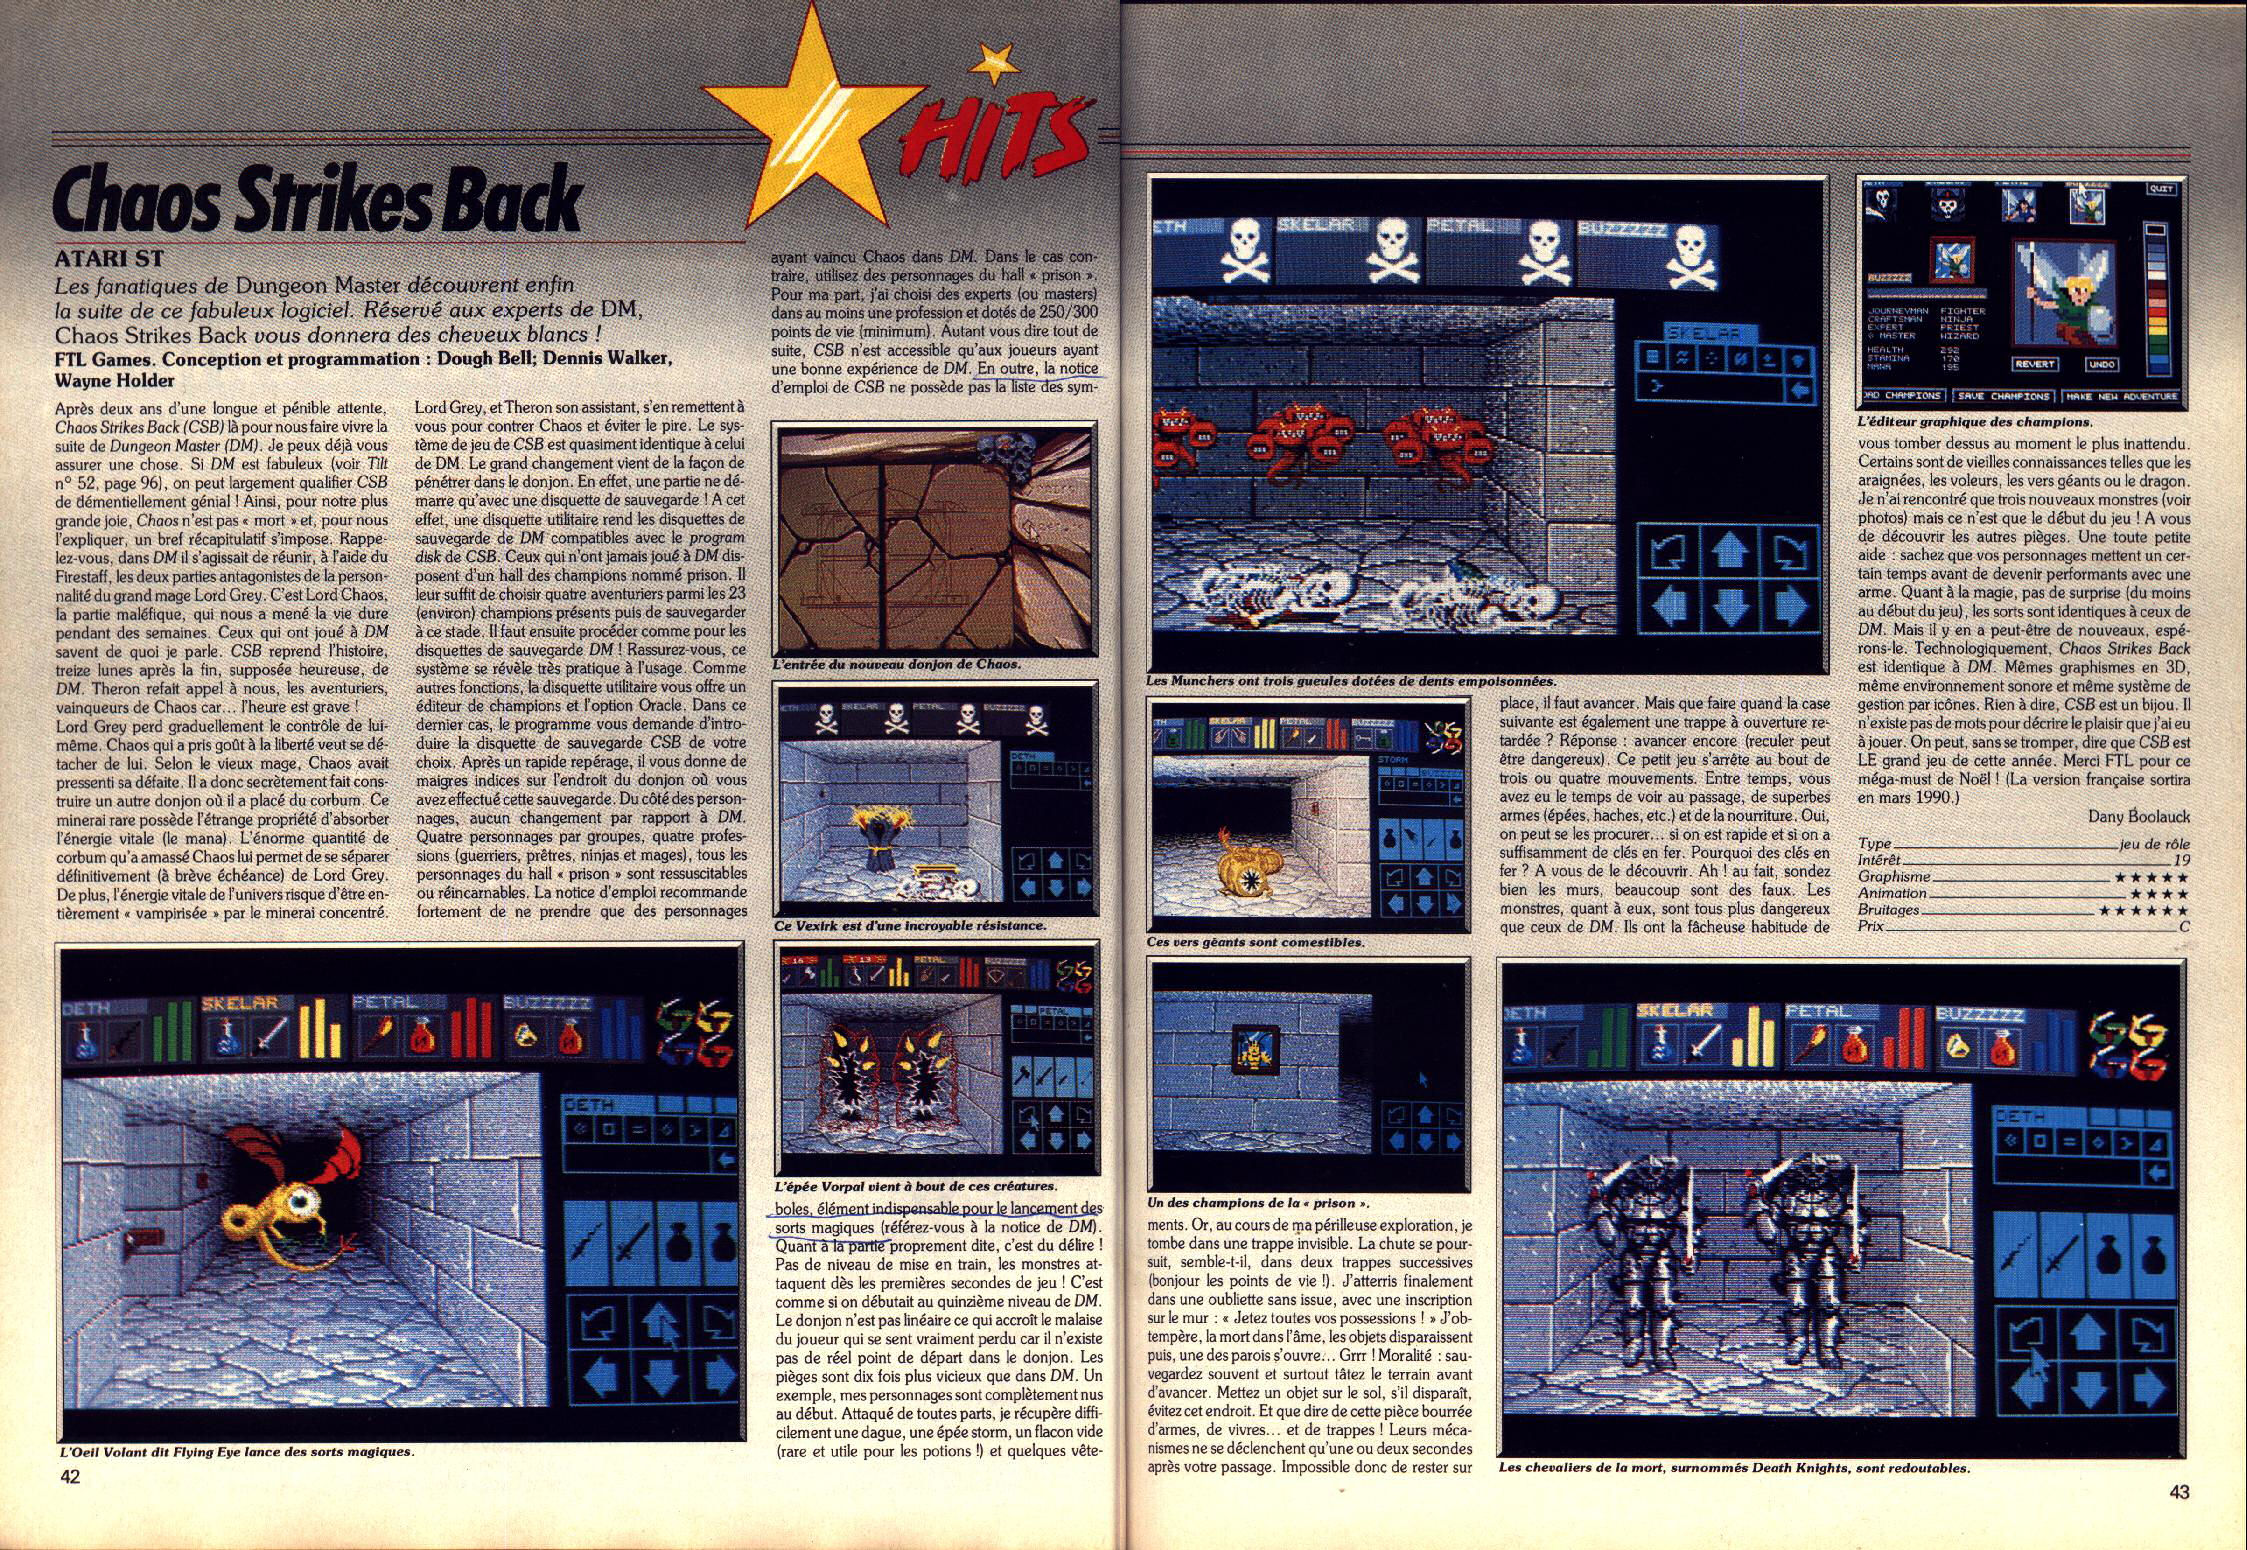 Chaos Strikes Back for Atari ST Review published in French magazine 'Tilt', Issue #74, January 1990, Pages 42-43